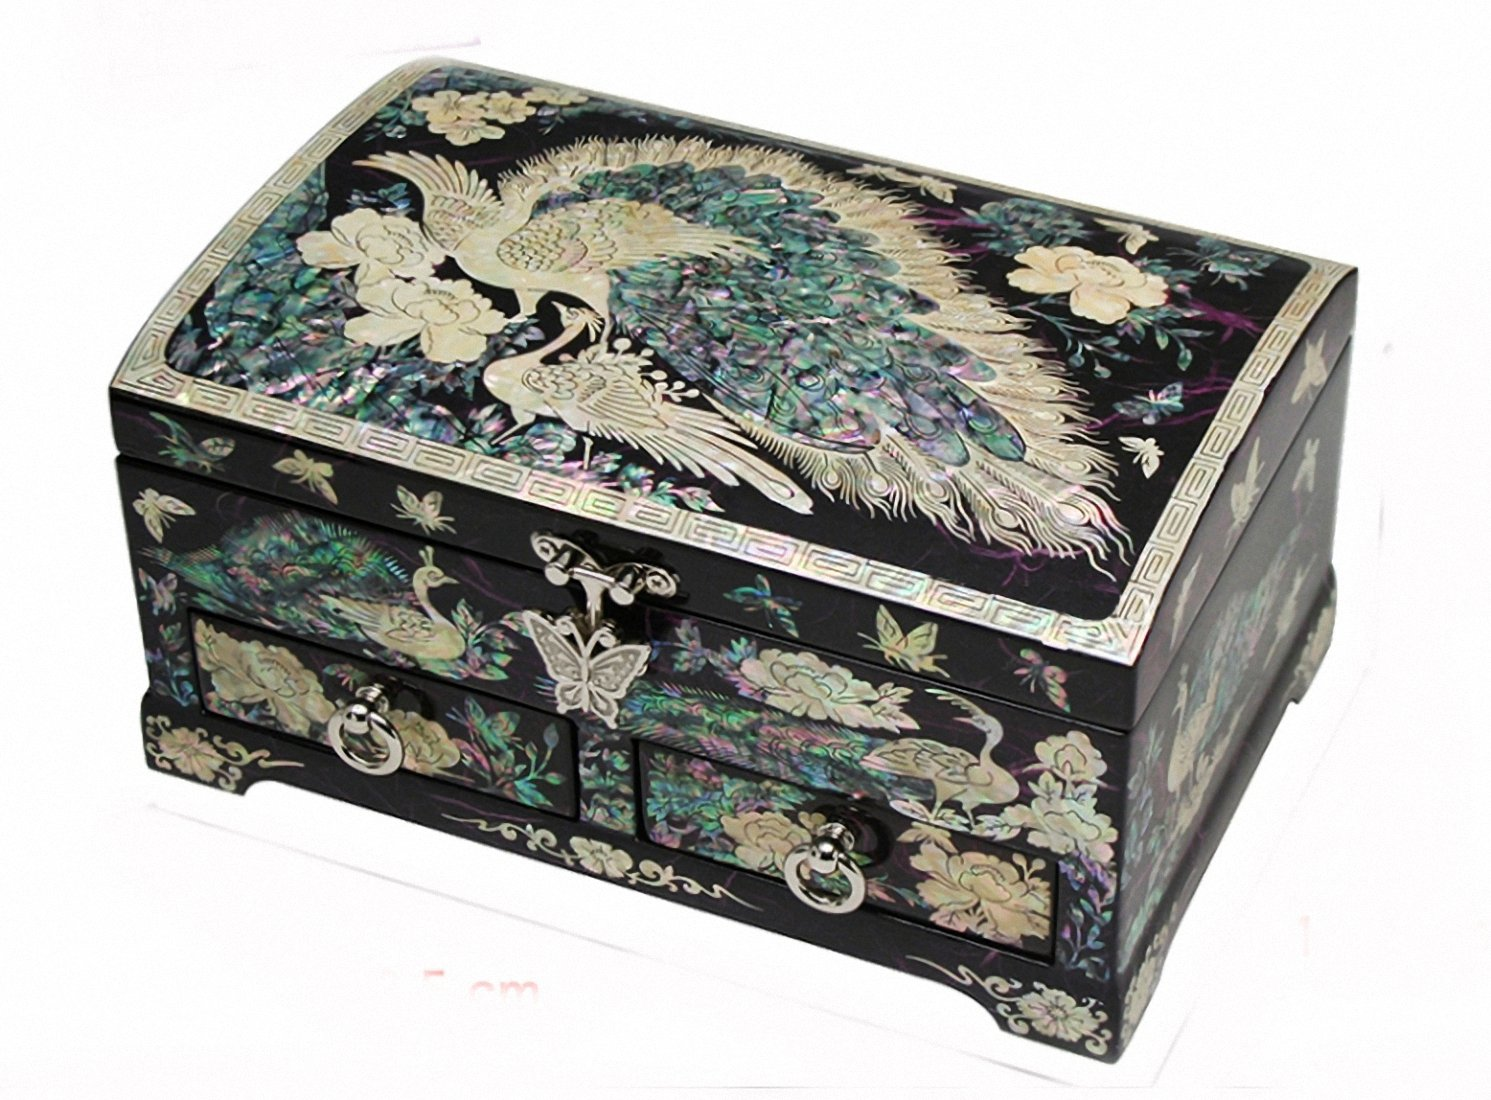 Mother of Pearl Asian Lacquer Wooden Red Peacock Bird Jewelry Case Trinket Keepsake Treasure Gift Box Organizer (PURPLE)